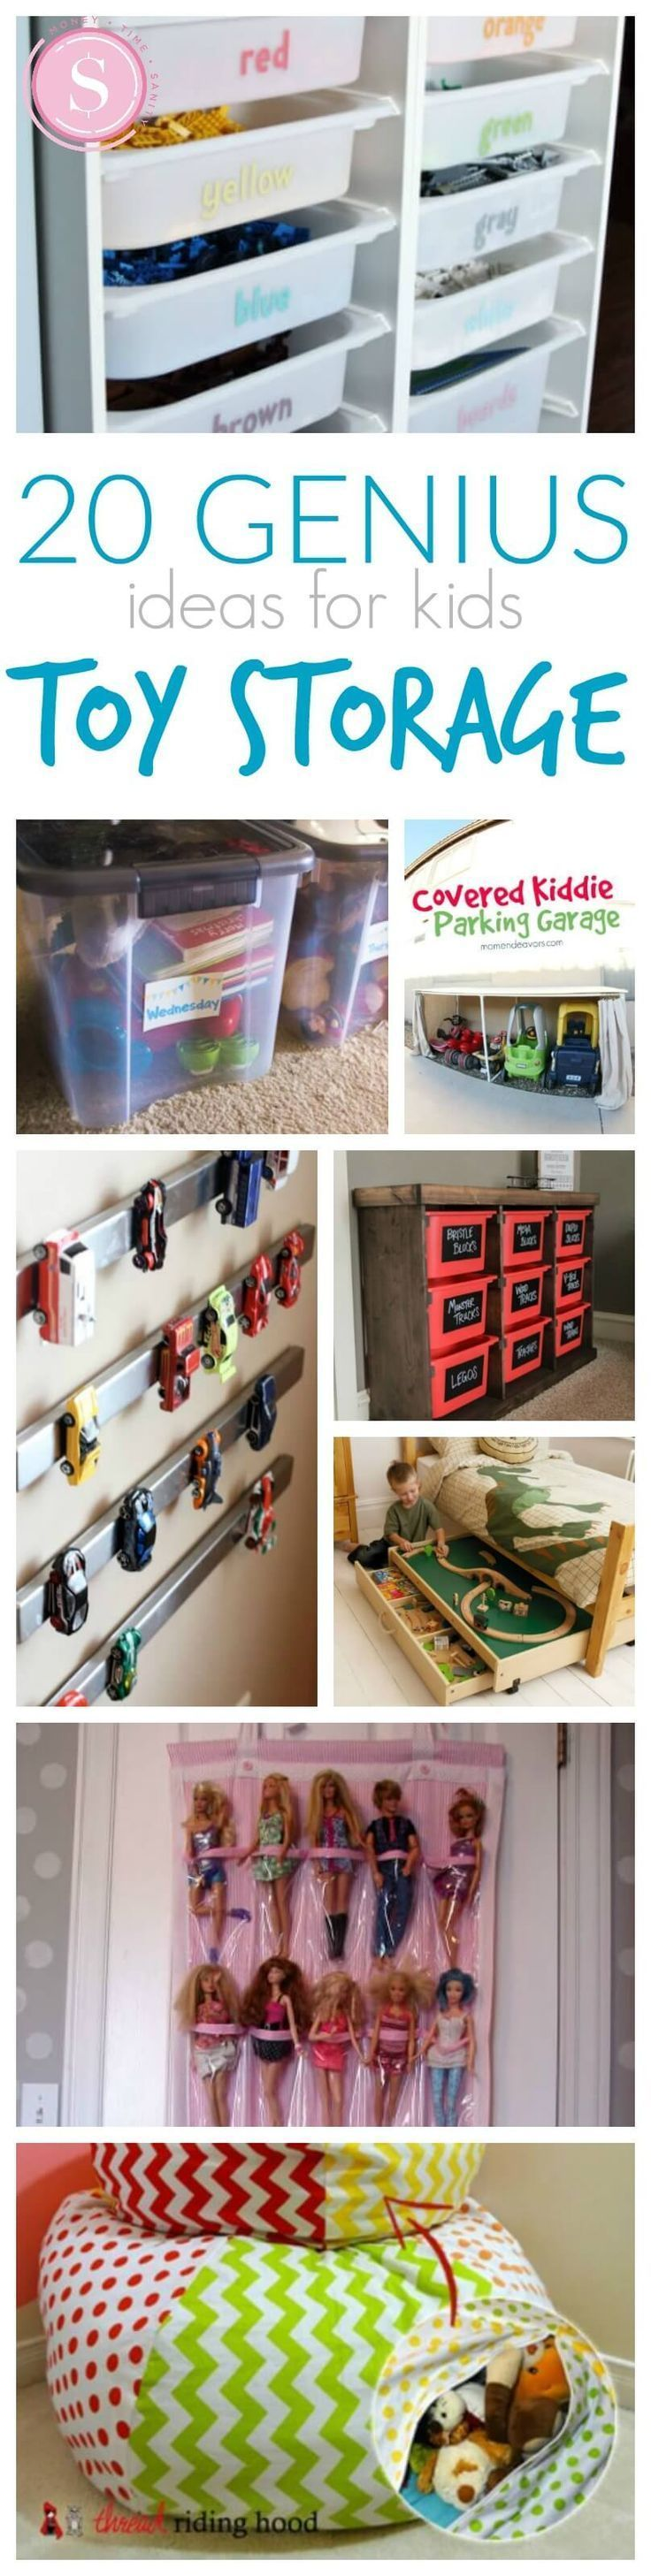 20 Genius Ideas for Organizing Your Kid s Rooms Great tips and